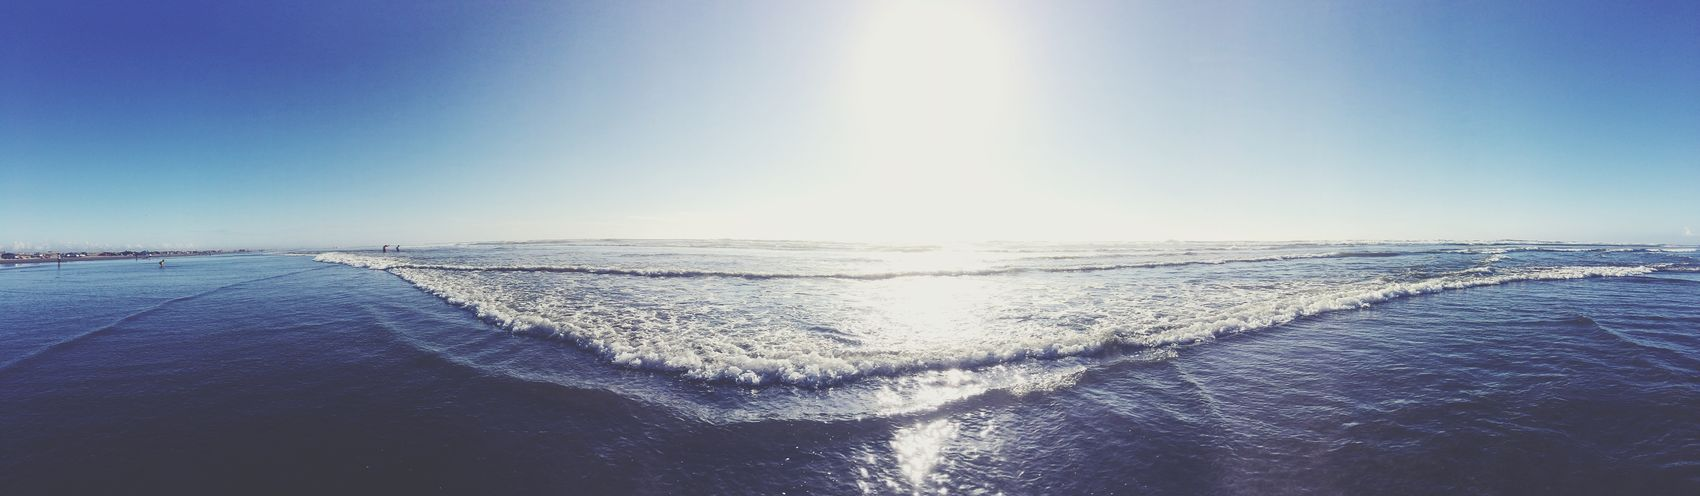 Beach Ocean Shores Panorama IPhone Photography Summer Like4like Follow4follow Like This MyPhotography Water